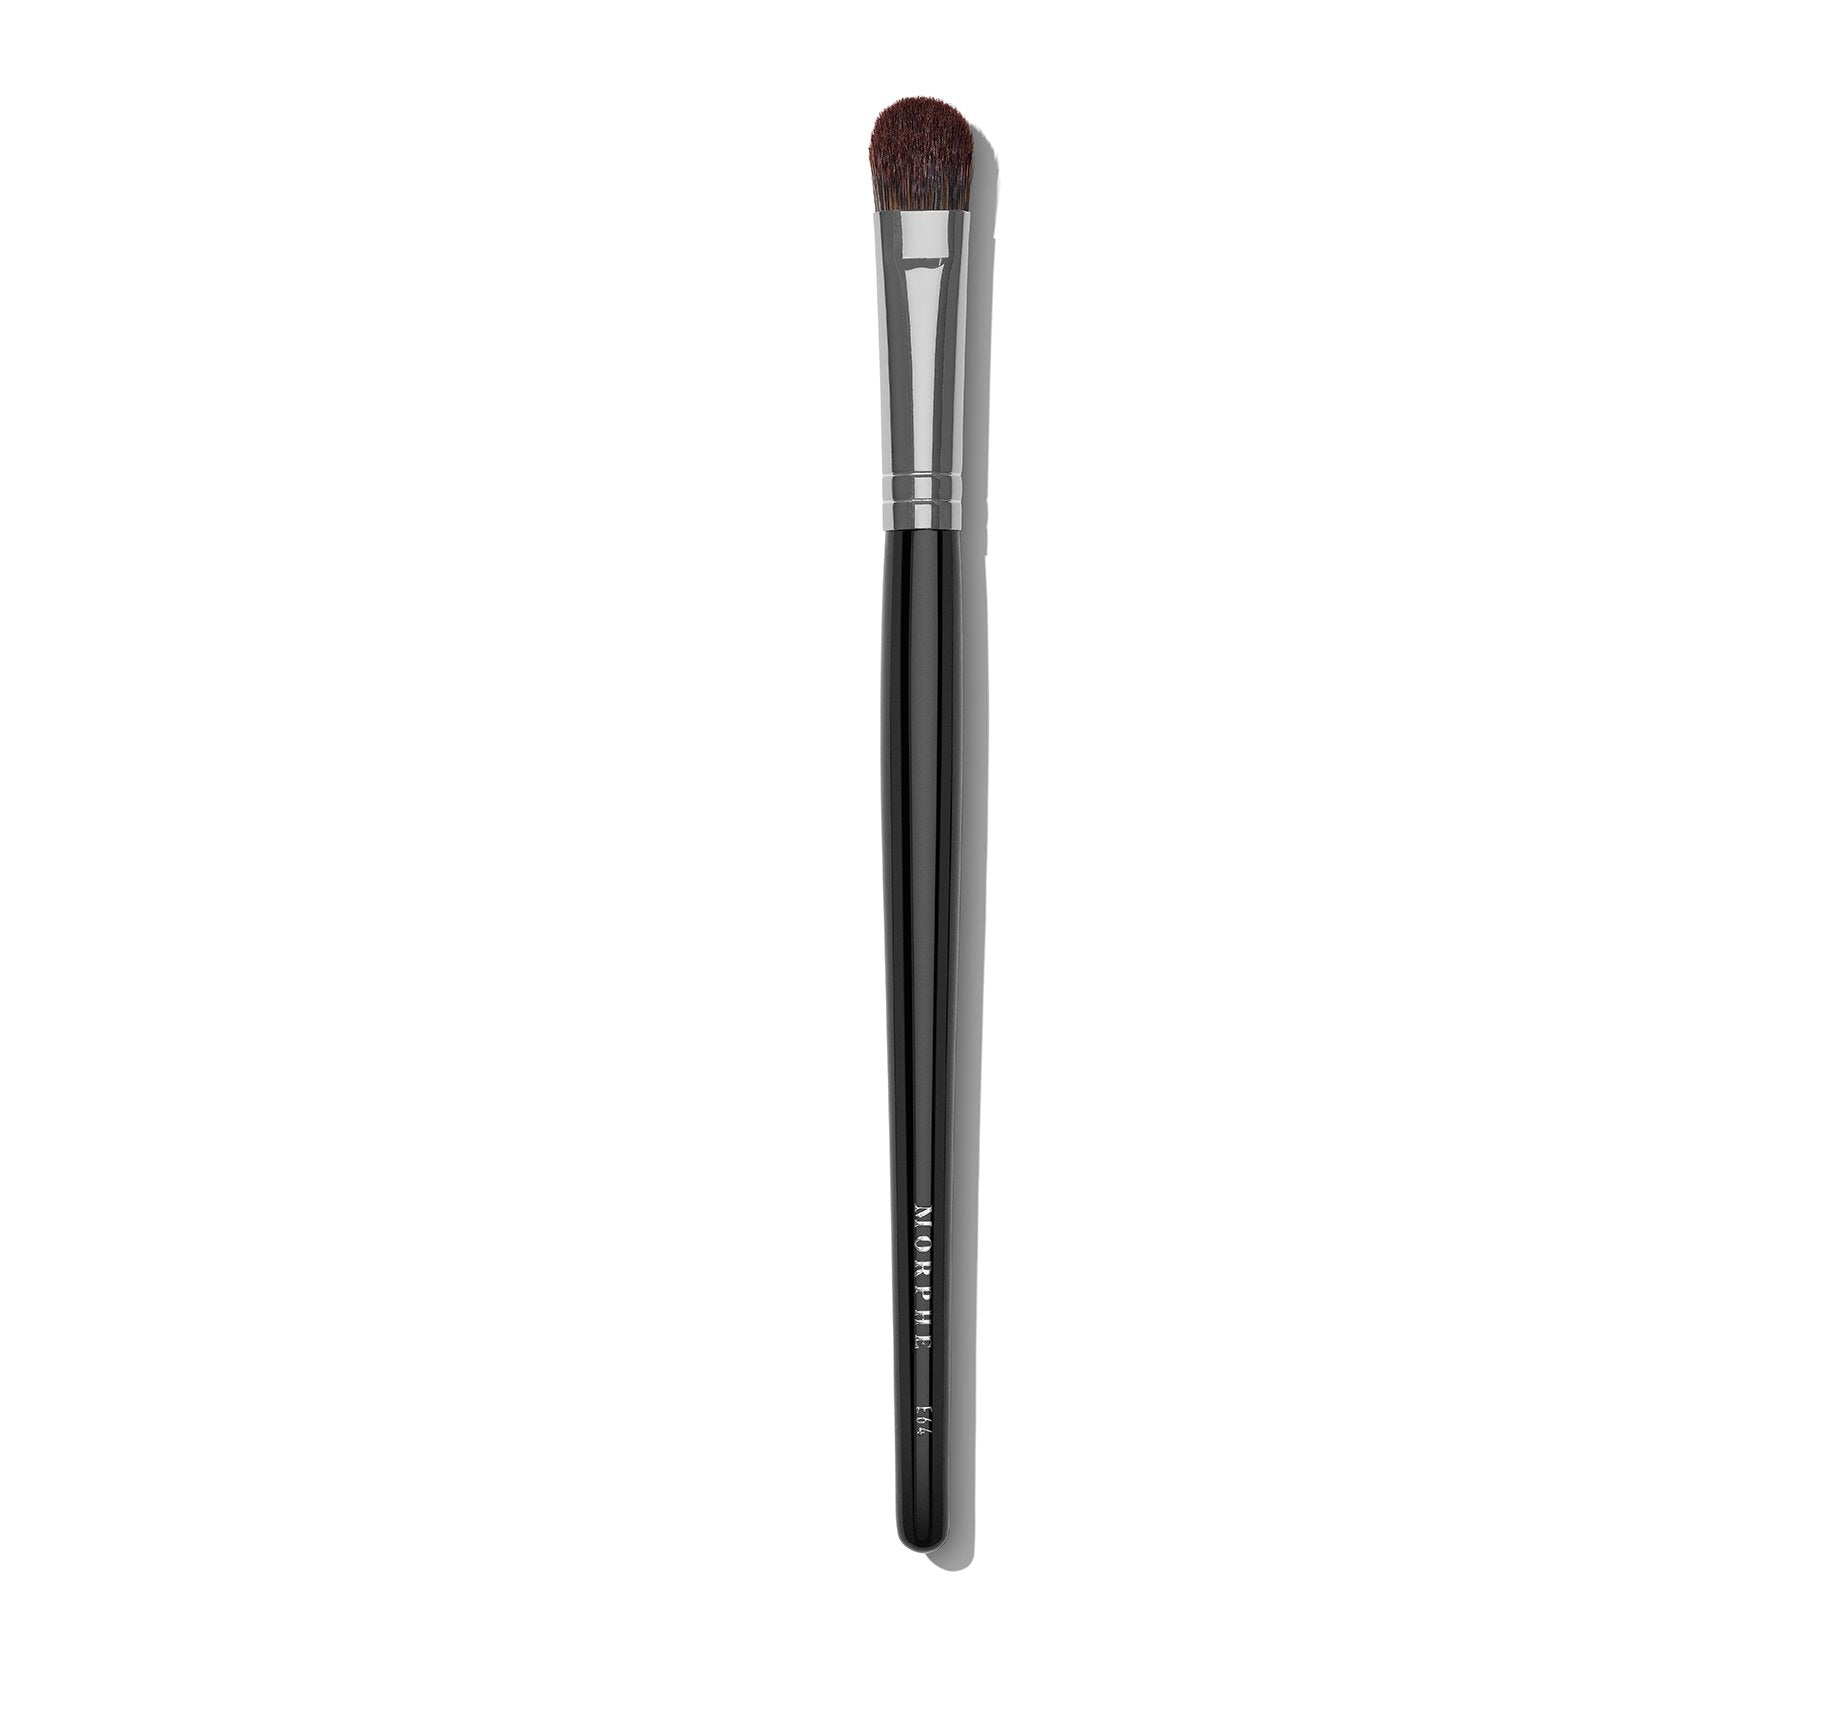 E64 ANGLED CONCEALER BRUSH, view larger image